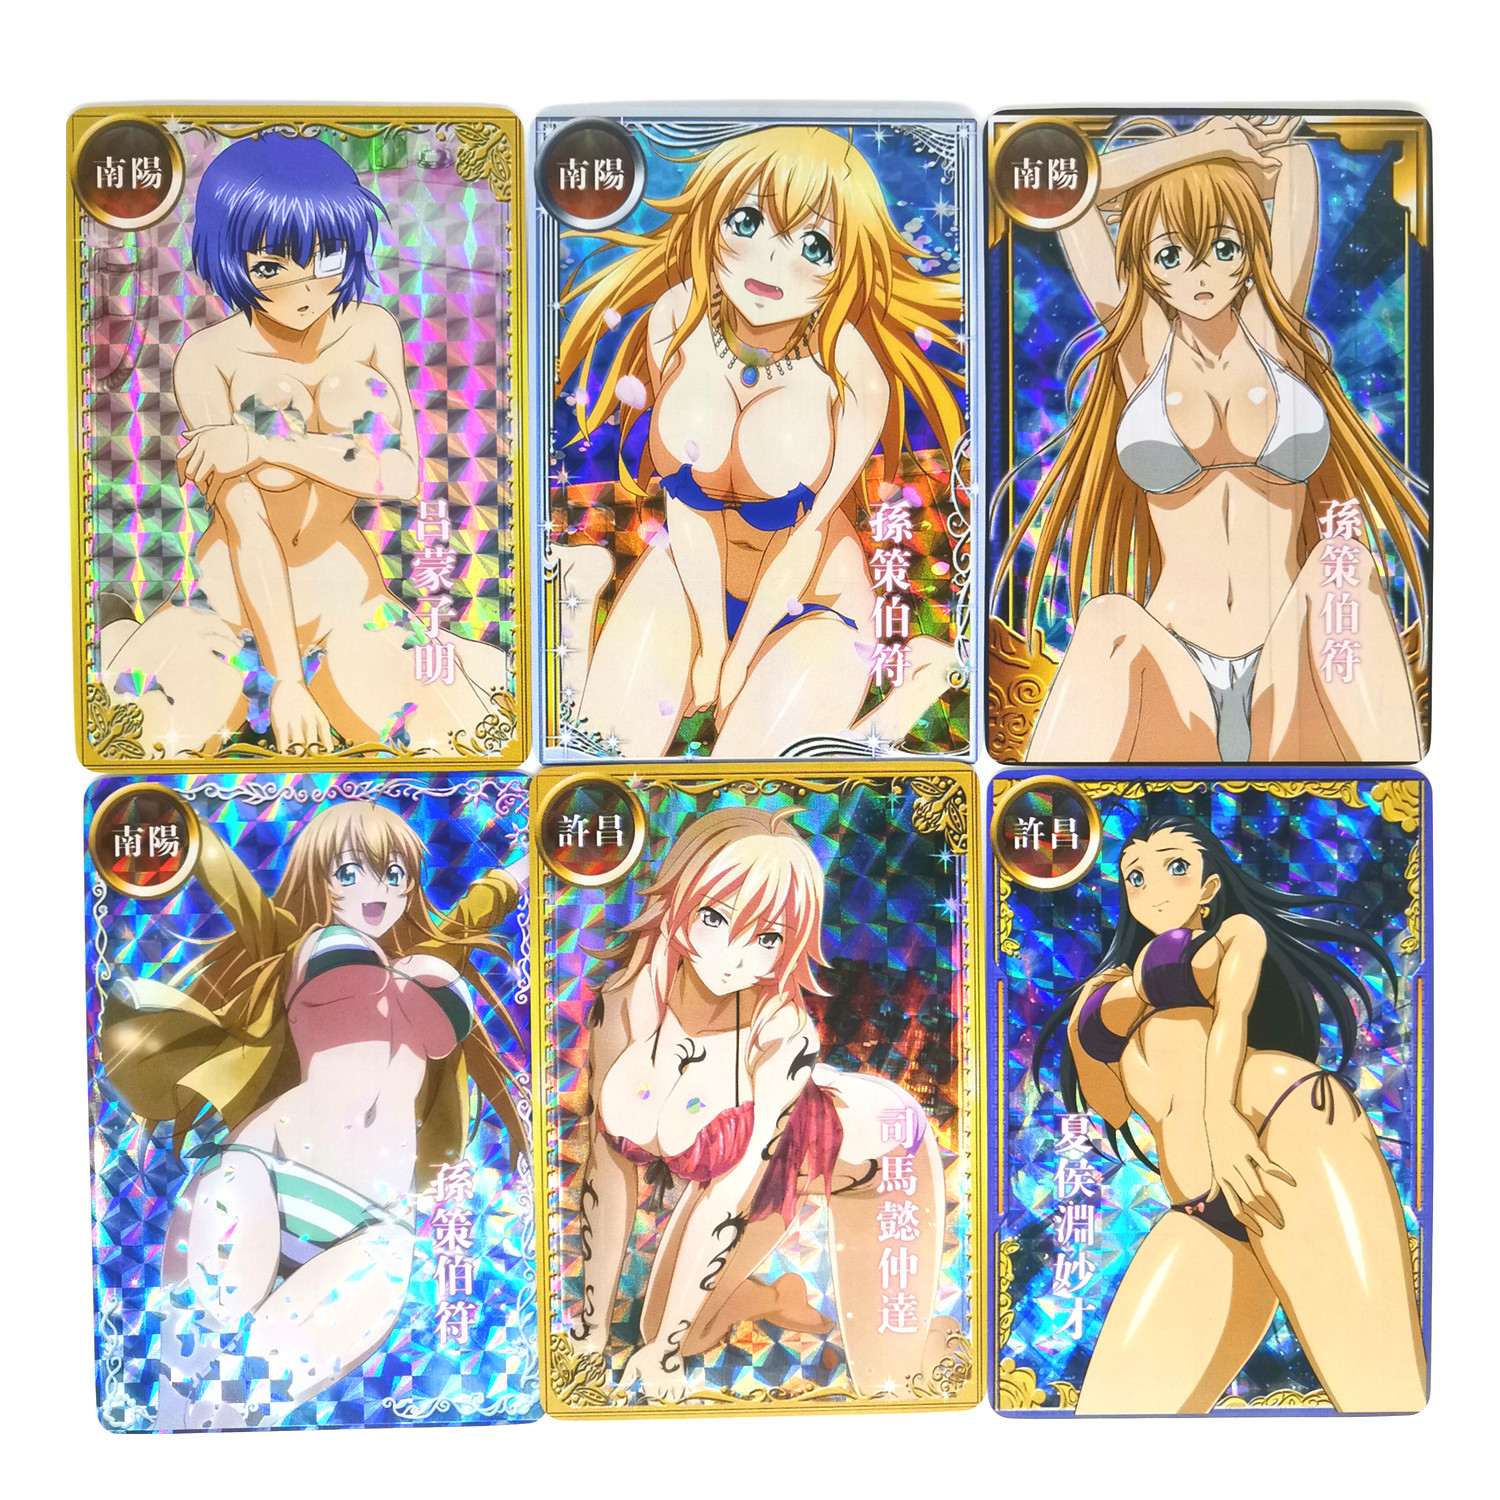 18pcs/set Ikkitousen Second Shot Swimsuit Toys Hobbies Hobby Collectibles Game Collection Anime Cards